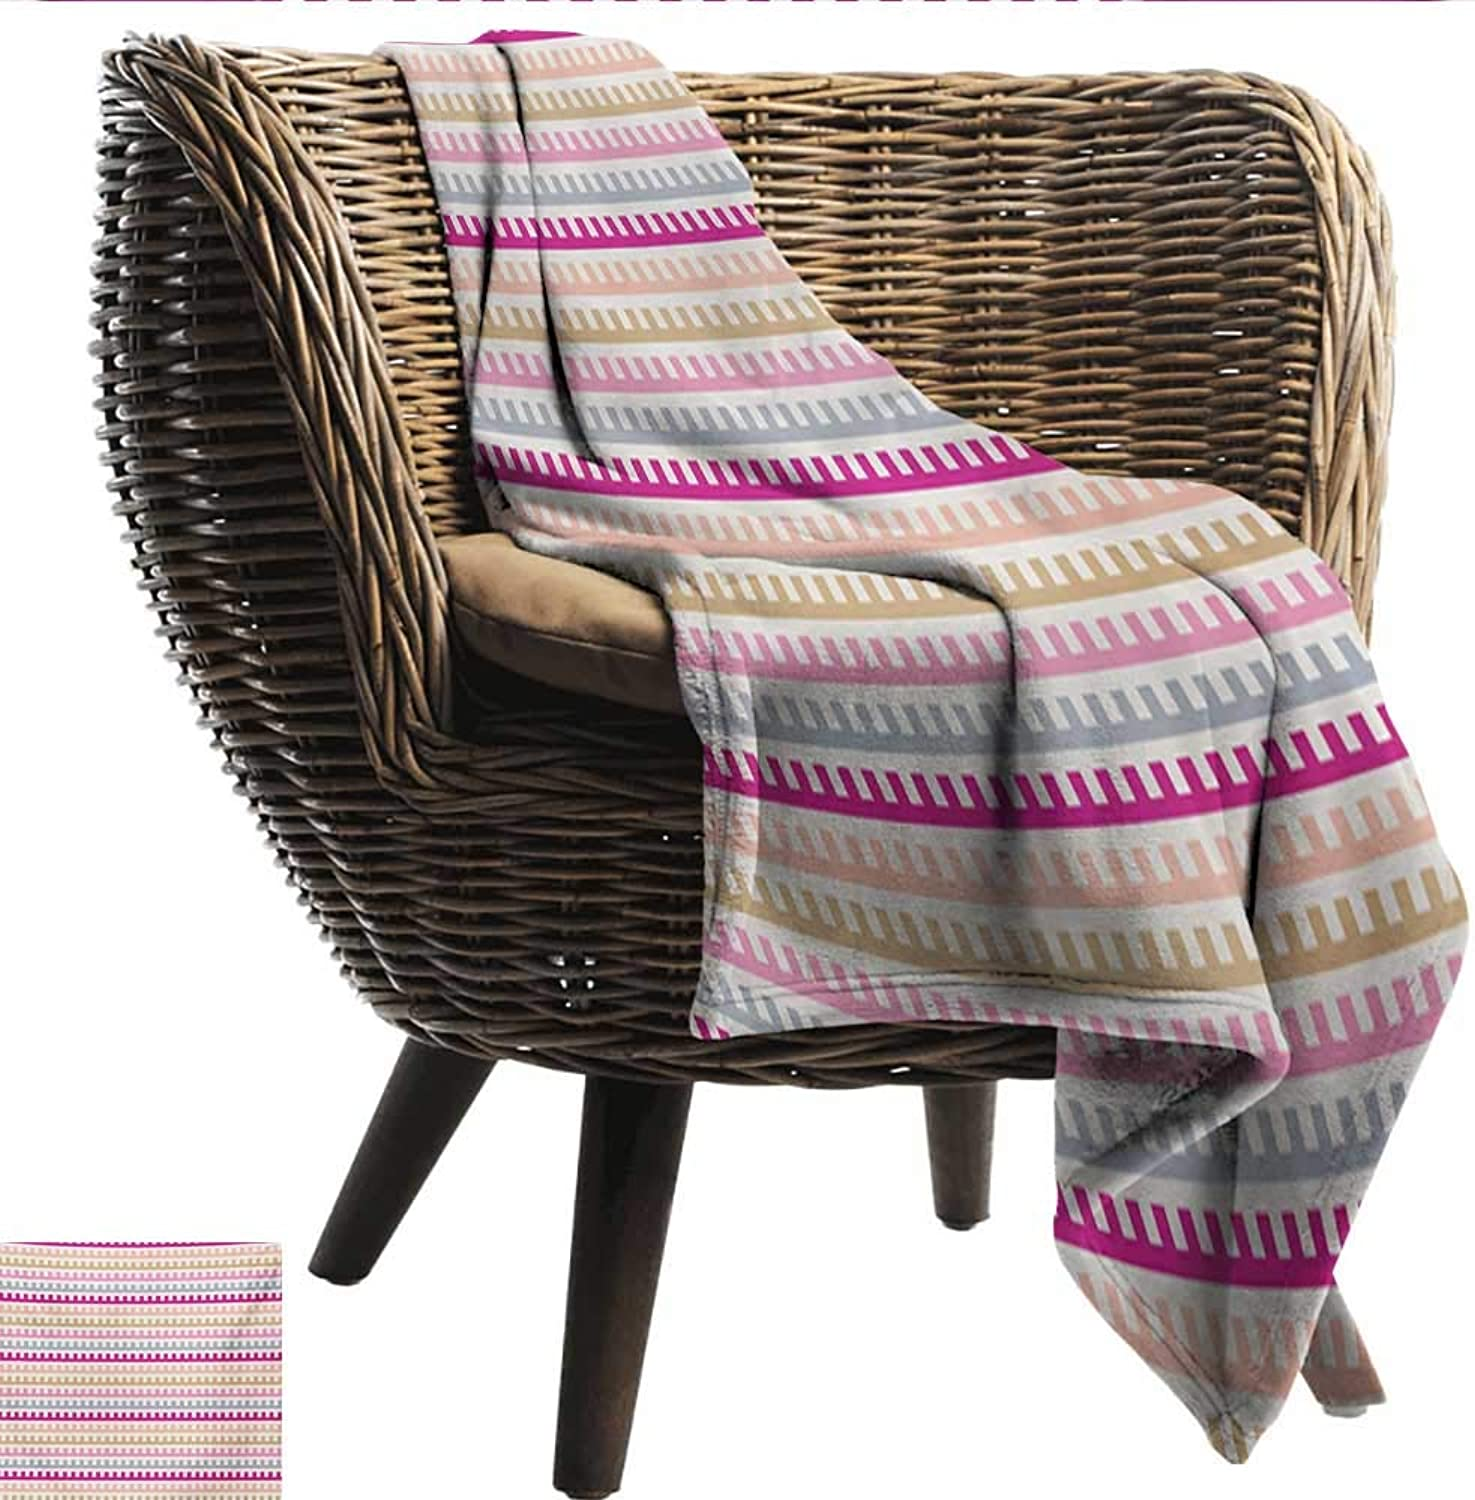 Anshesix Warm Blanket colorful Maze Like Labyrinth Inspired Pattern Horizontal Soft colord Old Fashioned Retro Print Summer Quilt Comforter W60 xL51 Sofa,Picnic,Camping,Beach,Everyday use